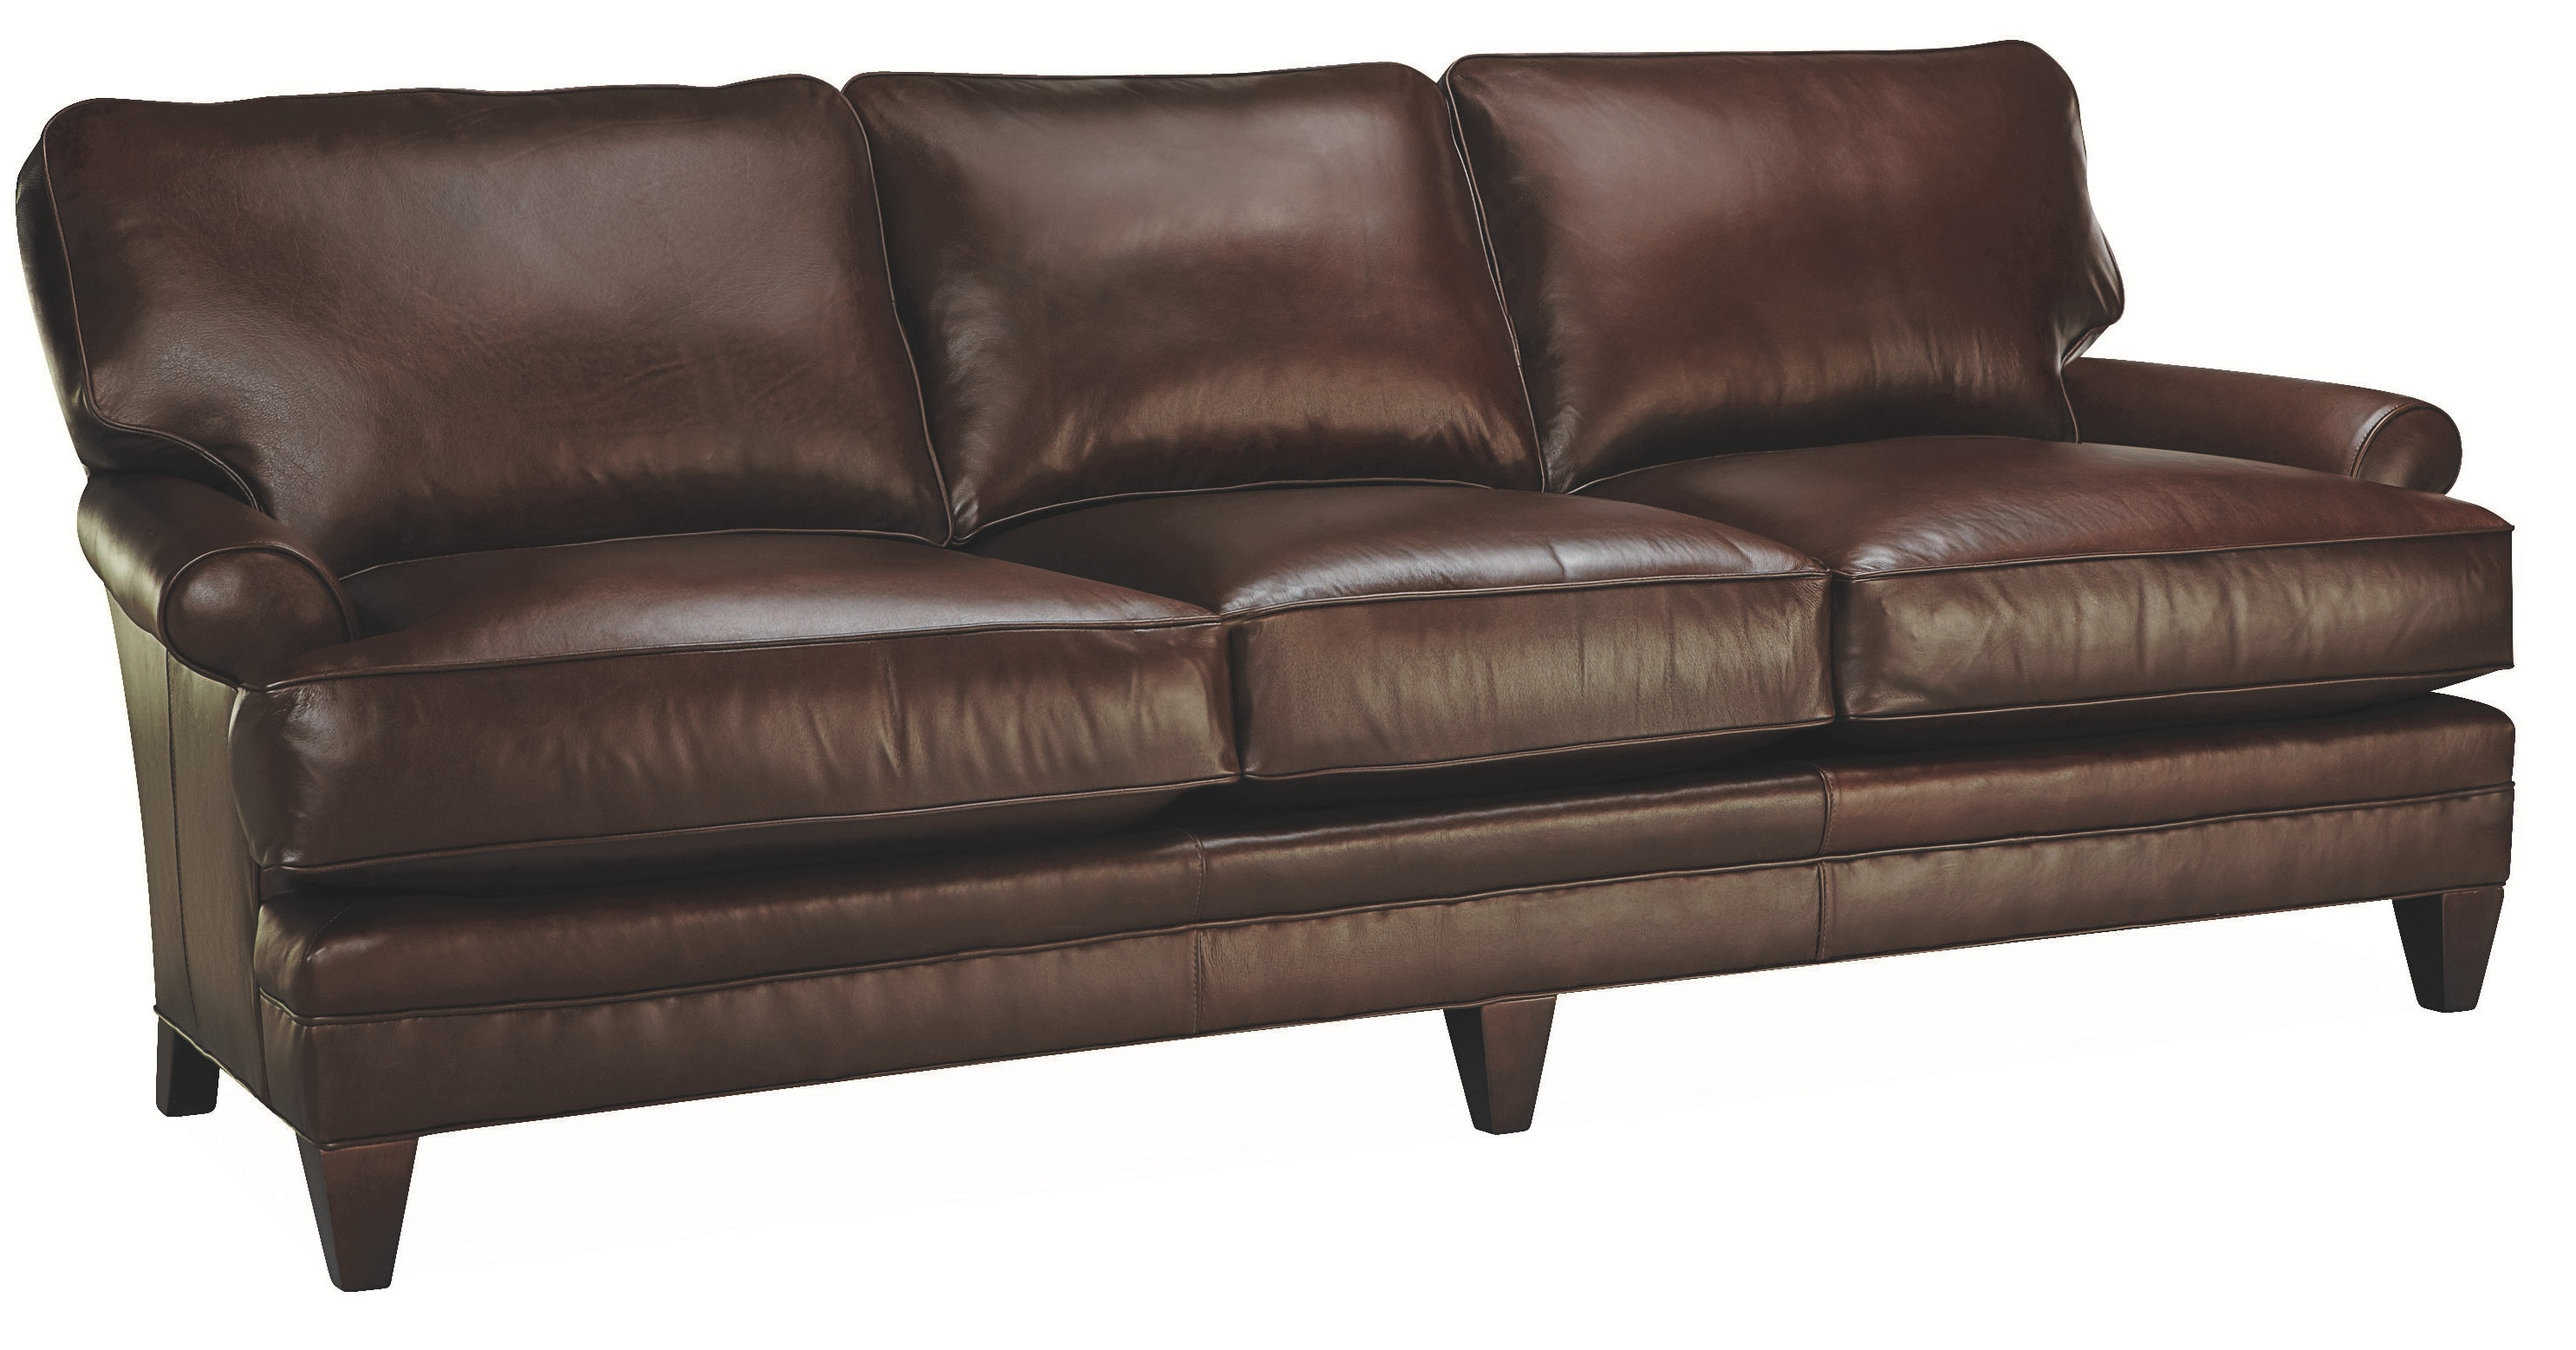 Lee Industries Leather Sofa L3894 03